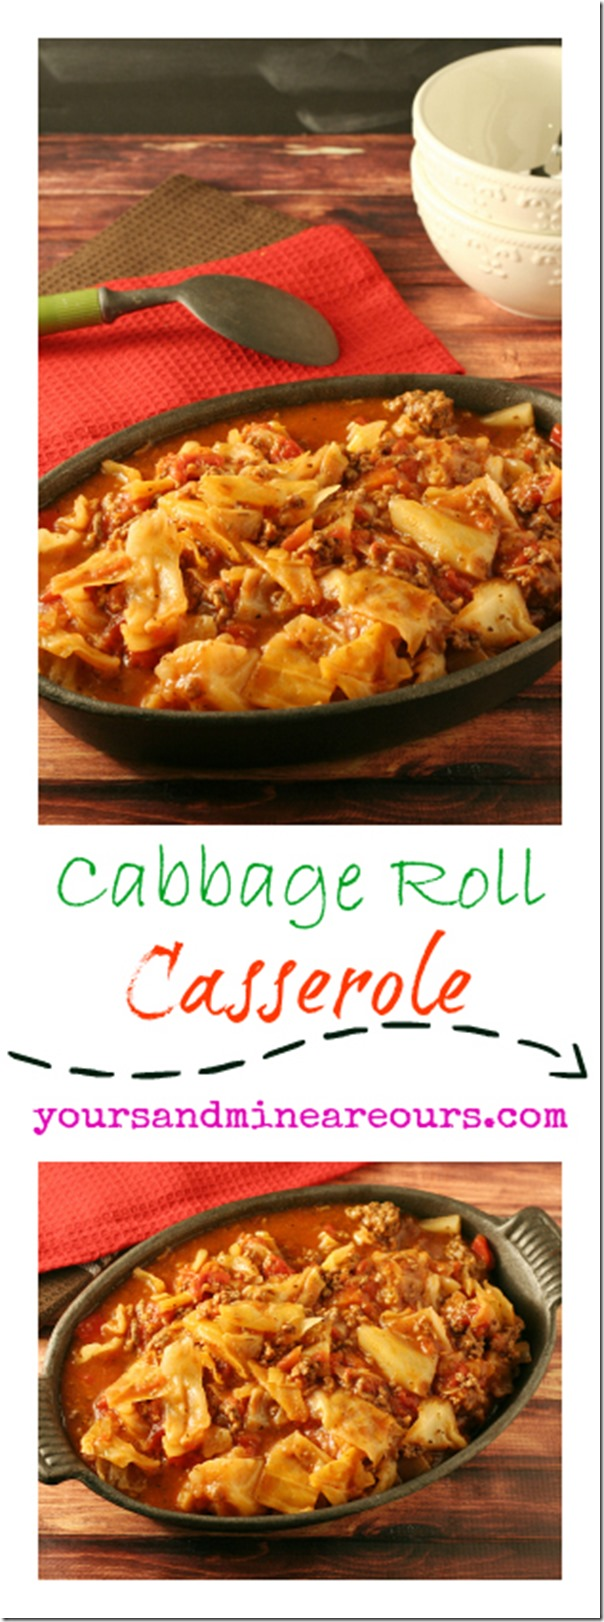 Unstuffed Cabbage Roll Casserole - Quick Weeknight Meal - Yours And Mine Are Ours - Delicious Low-Carb Dinner that's perfect for the days you are short on time!